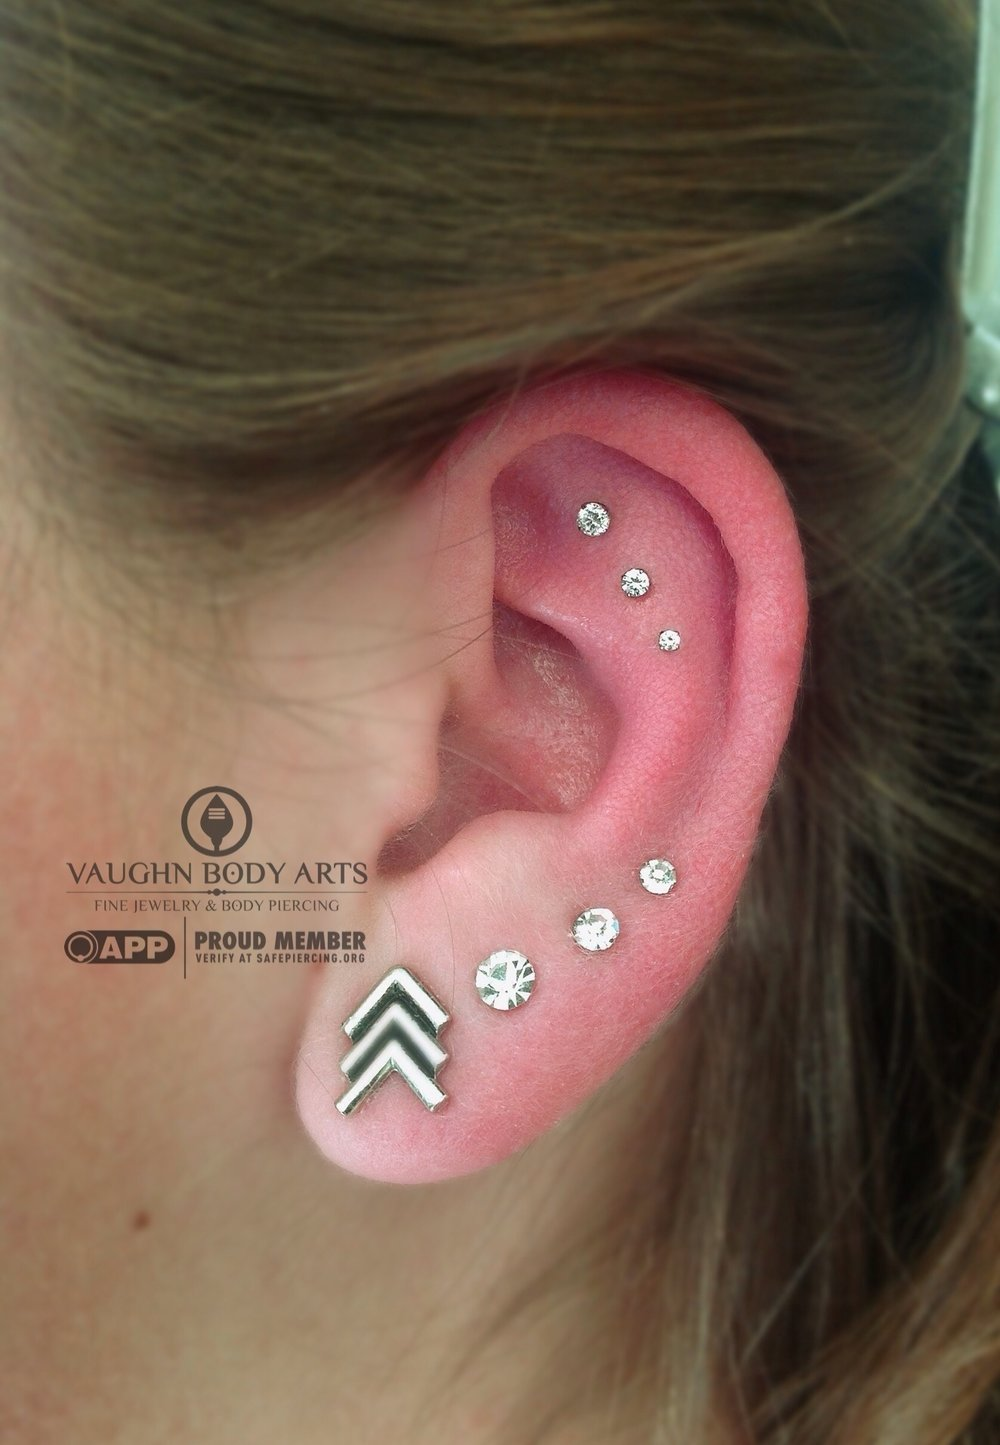 Triple helix piercings with titanium jewelry from NeoMetal.